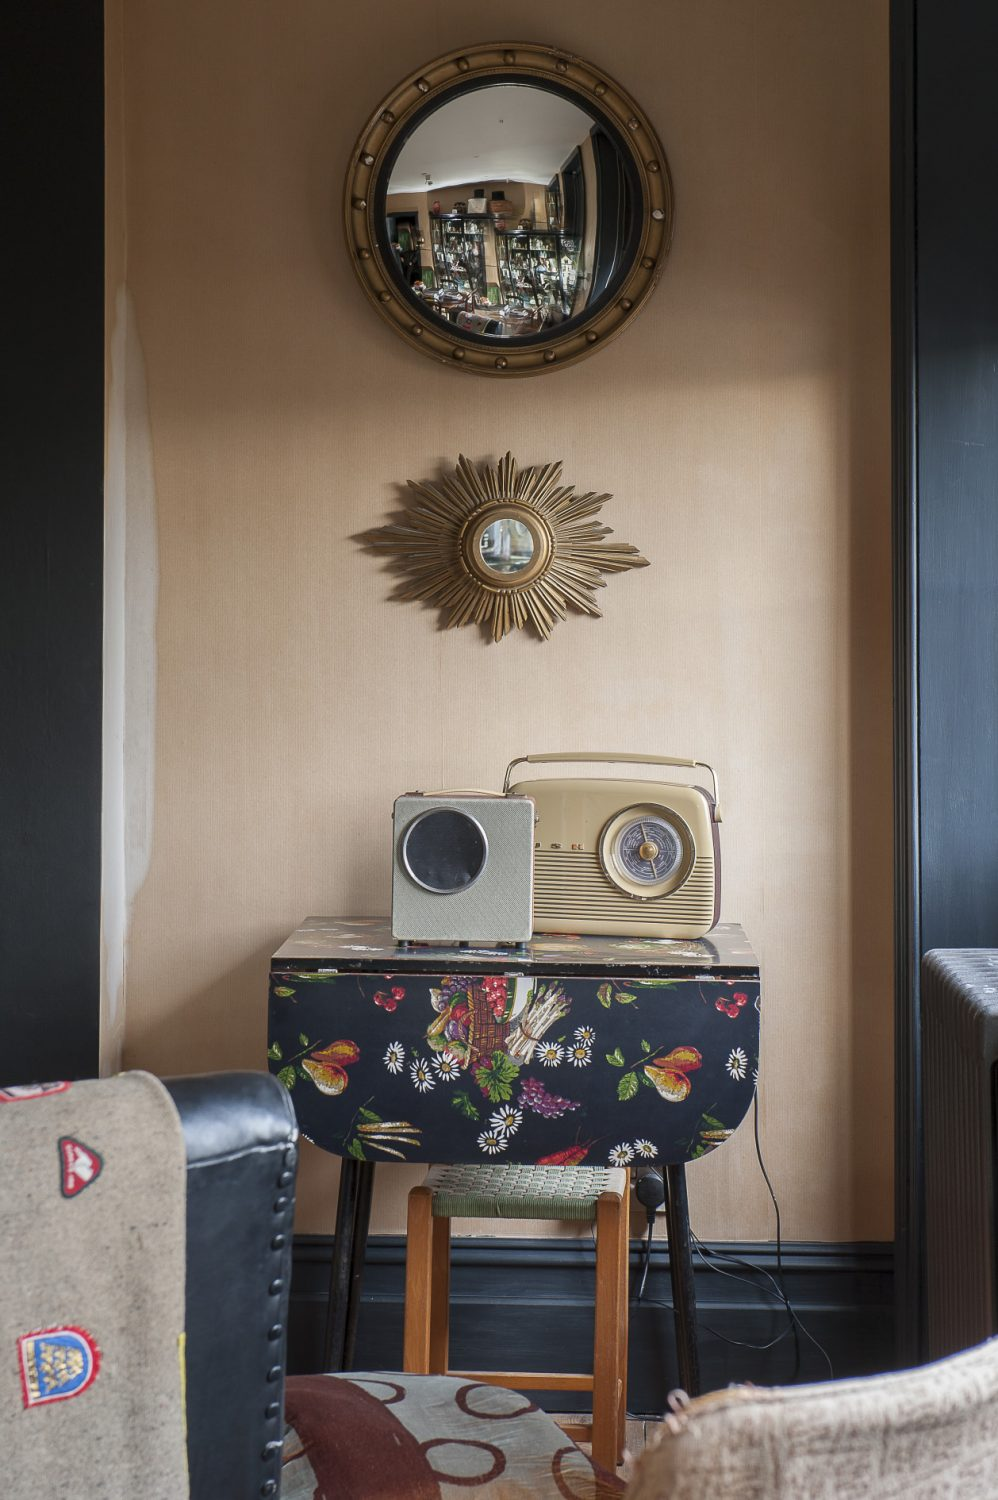 """For vintage finds and quirky items, Jilly is a fan of the Sunbury Antiques Market as well as Dolly Miller in nearby Margate. """"I just buy what I like,"""" says Jilly. """"There is no grand plan."""""""